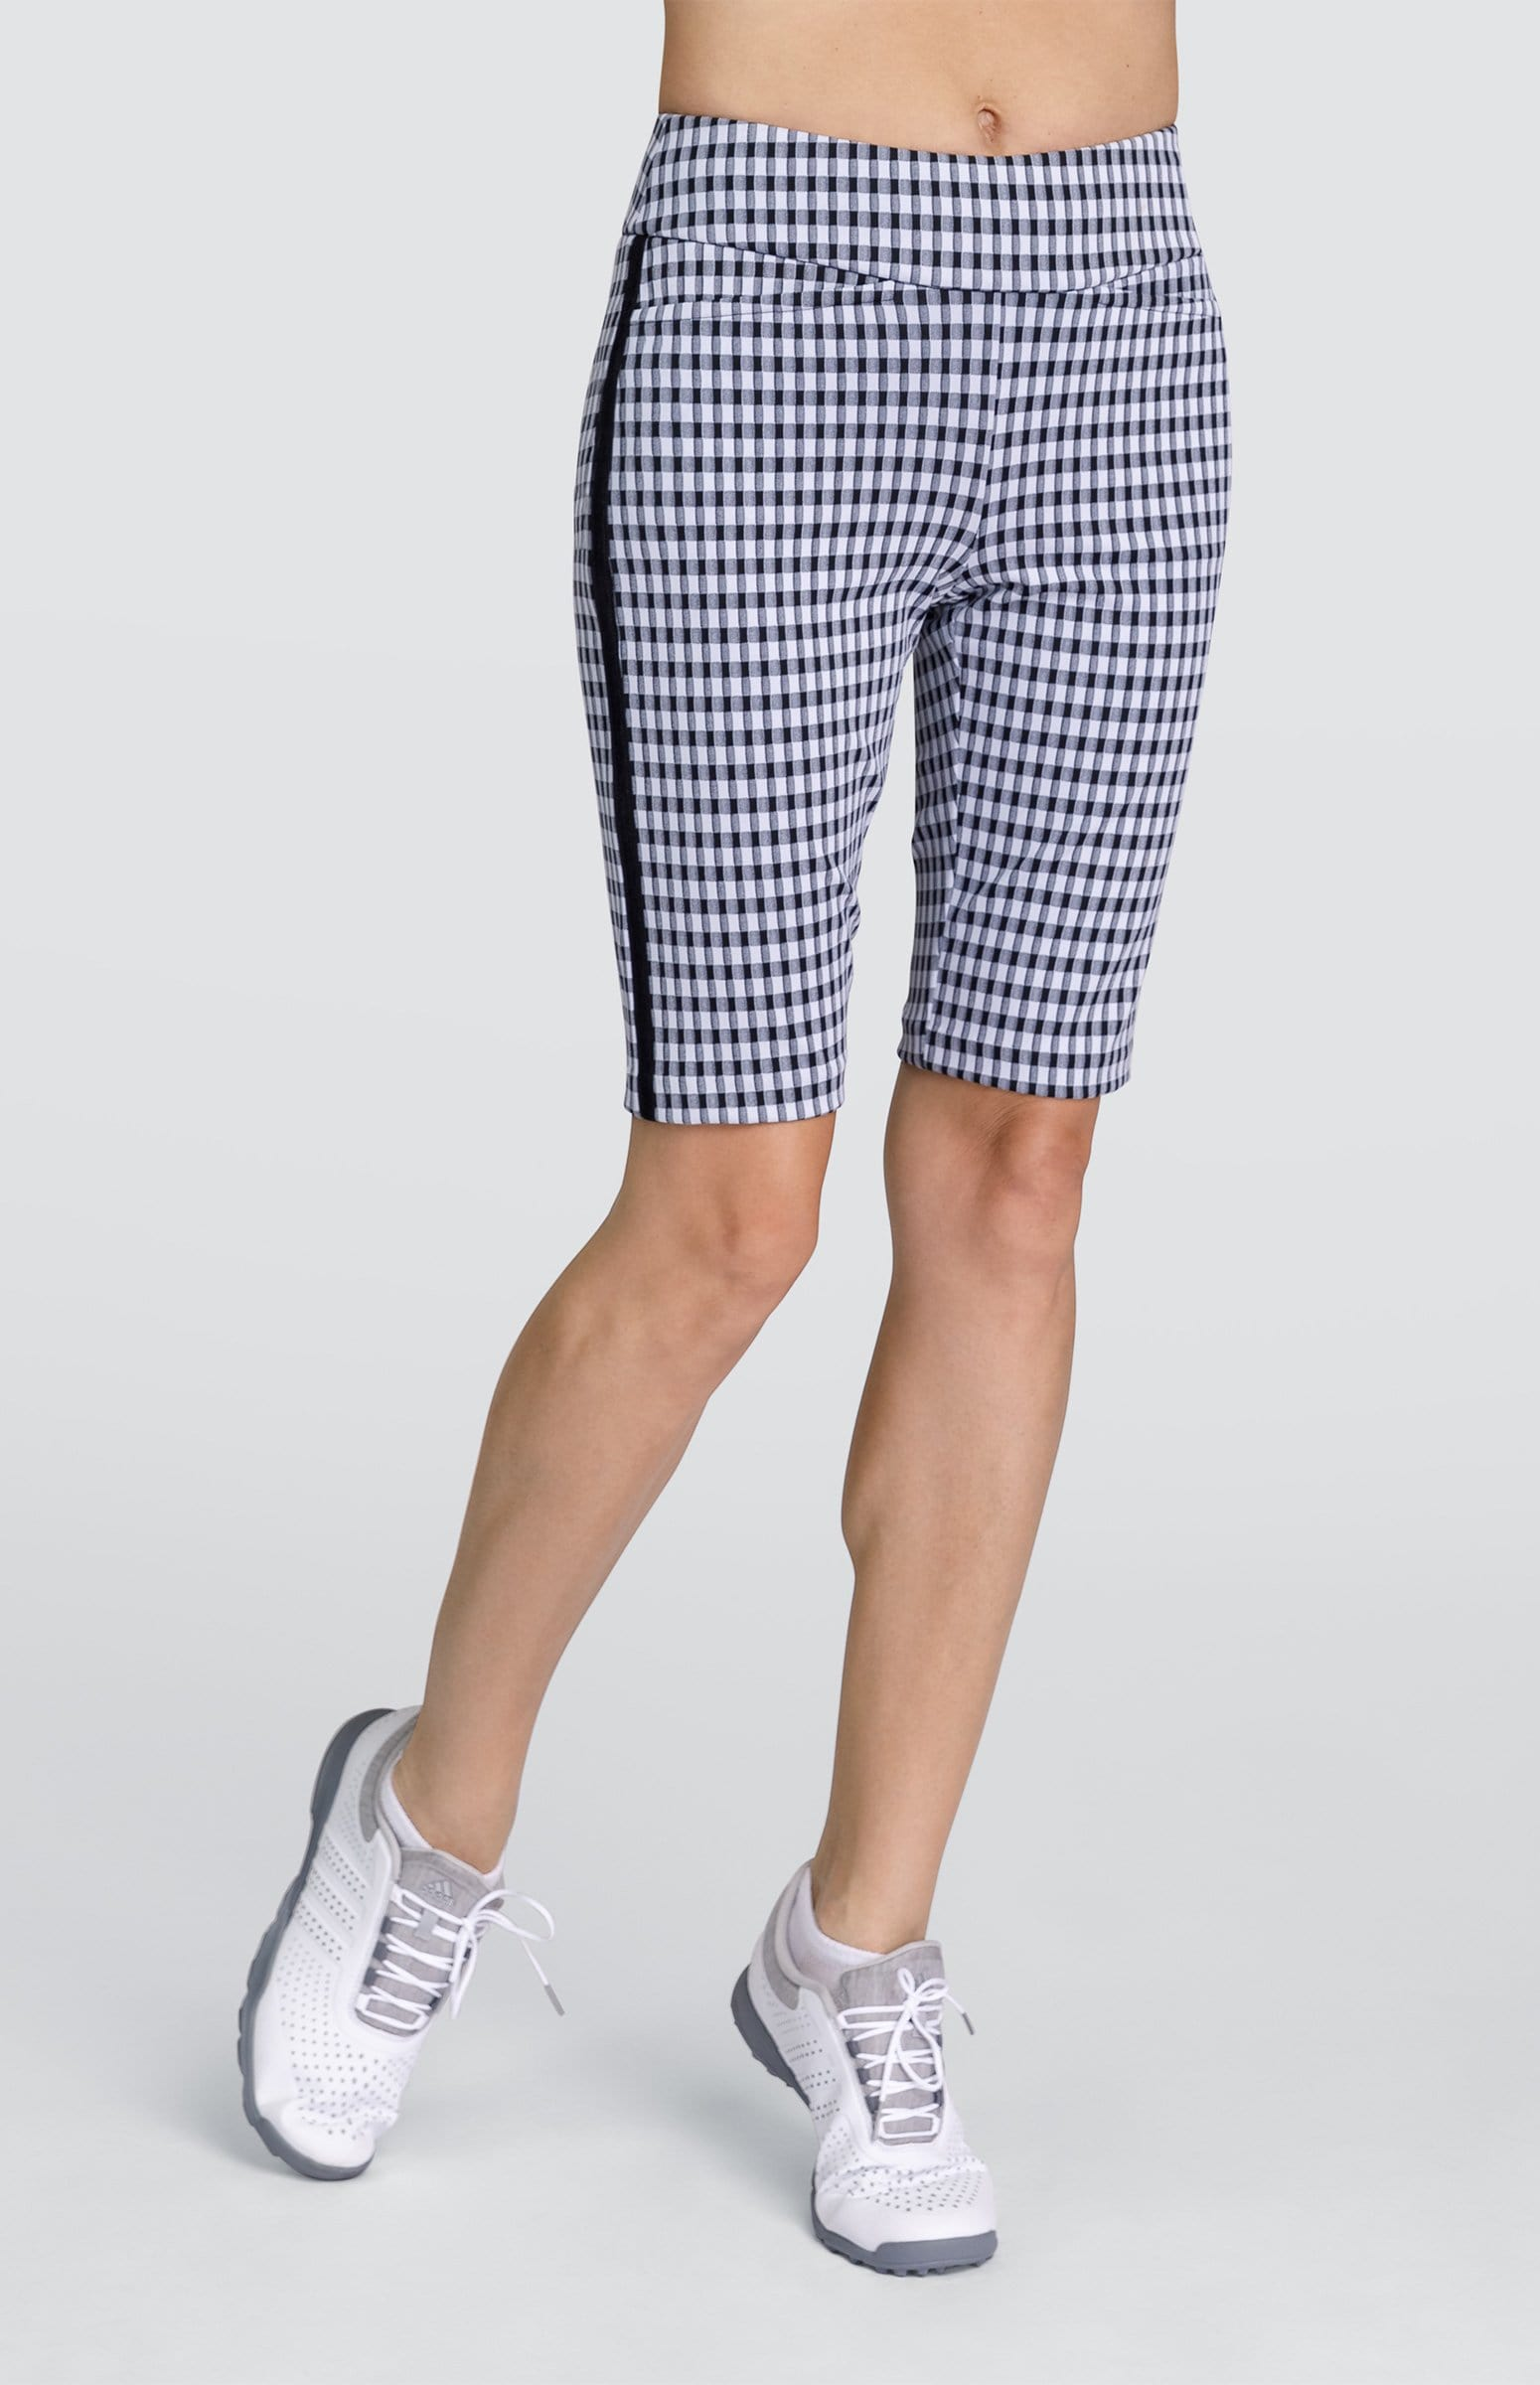 Alanna Short - Gingham